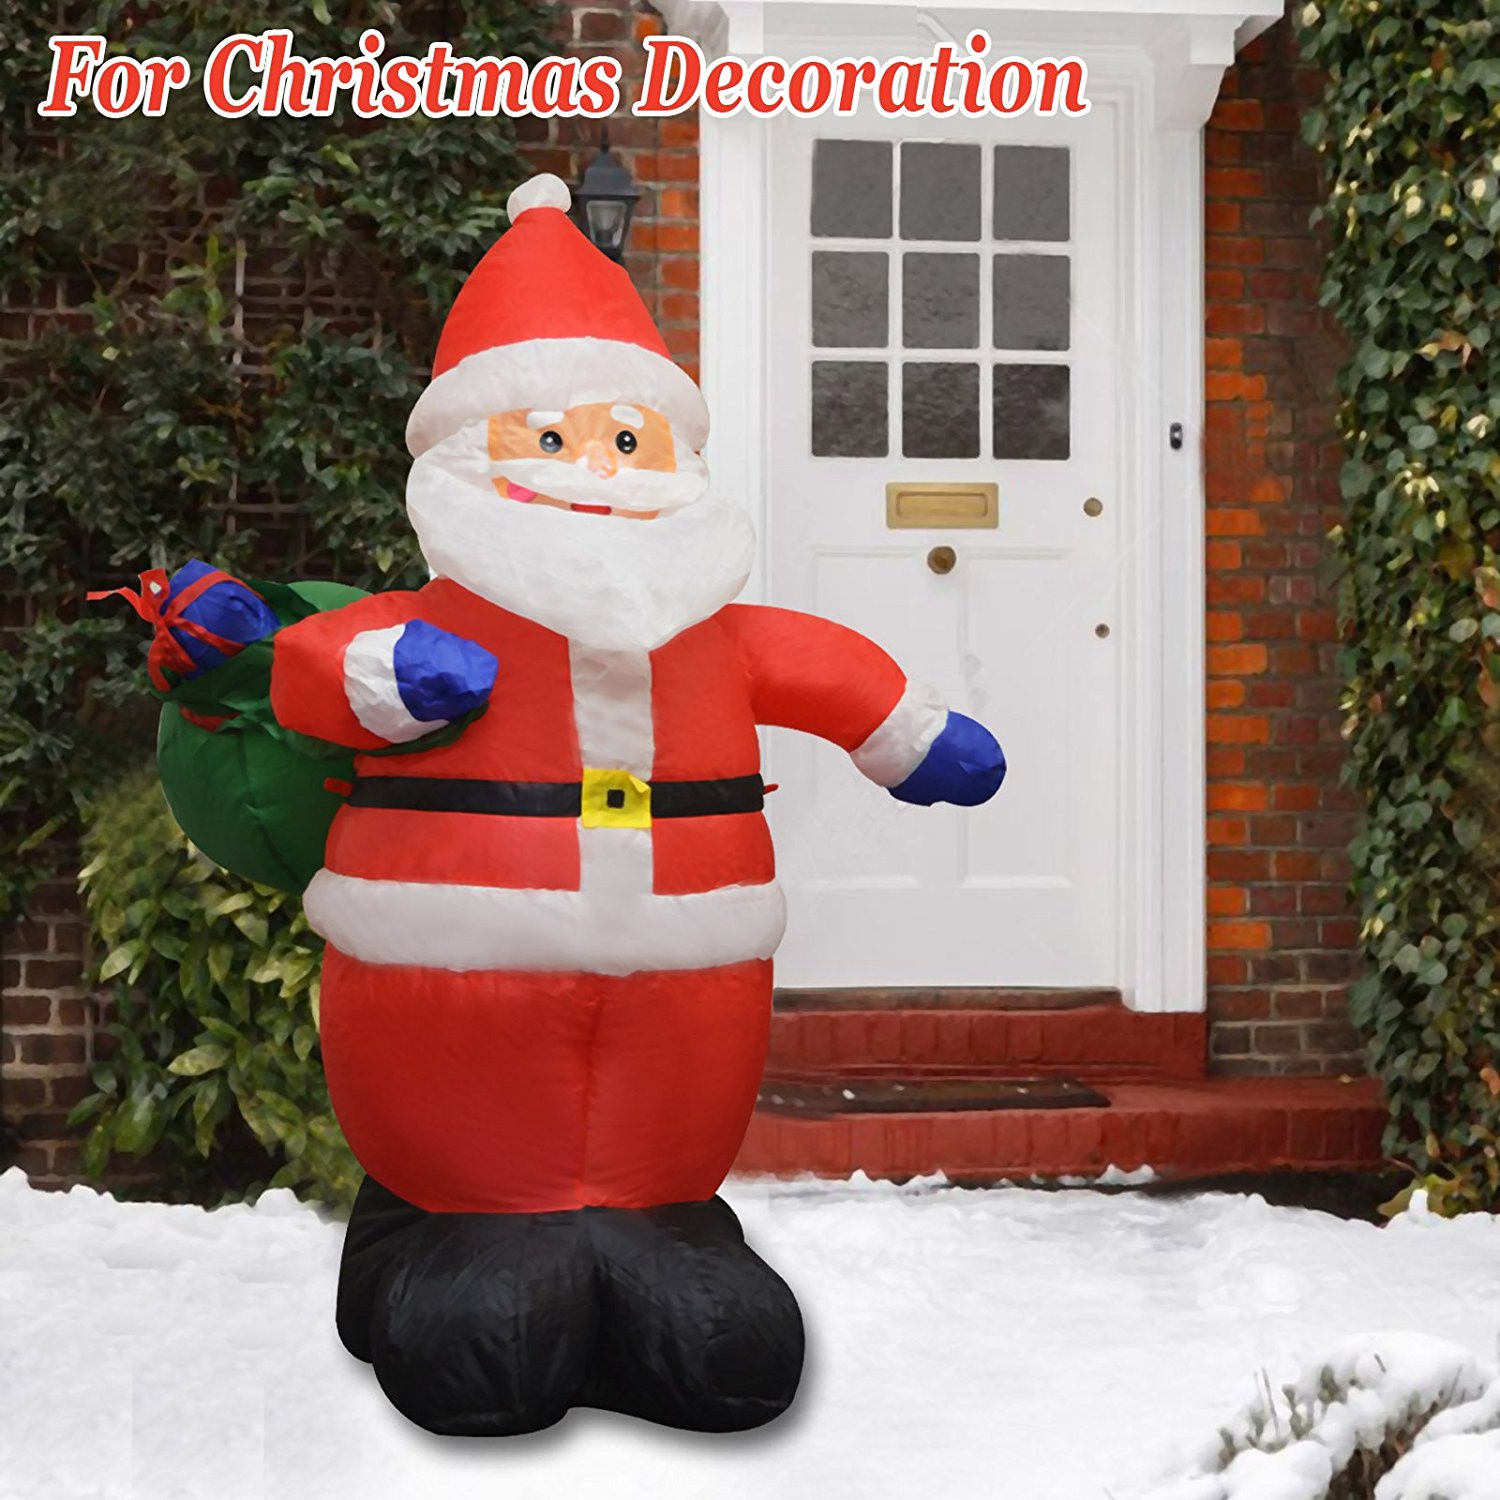 Strong Camel Christmas Air Blown Inflatable 4' Santa Claus Lighted Outdoor Yard Decor